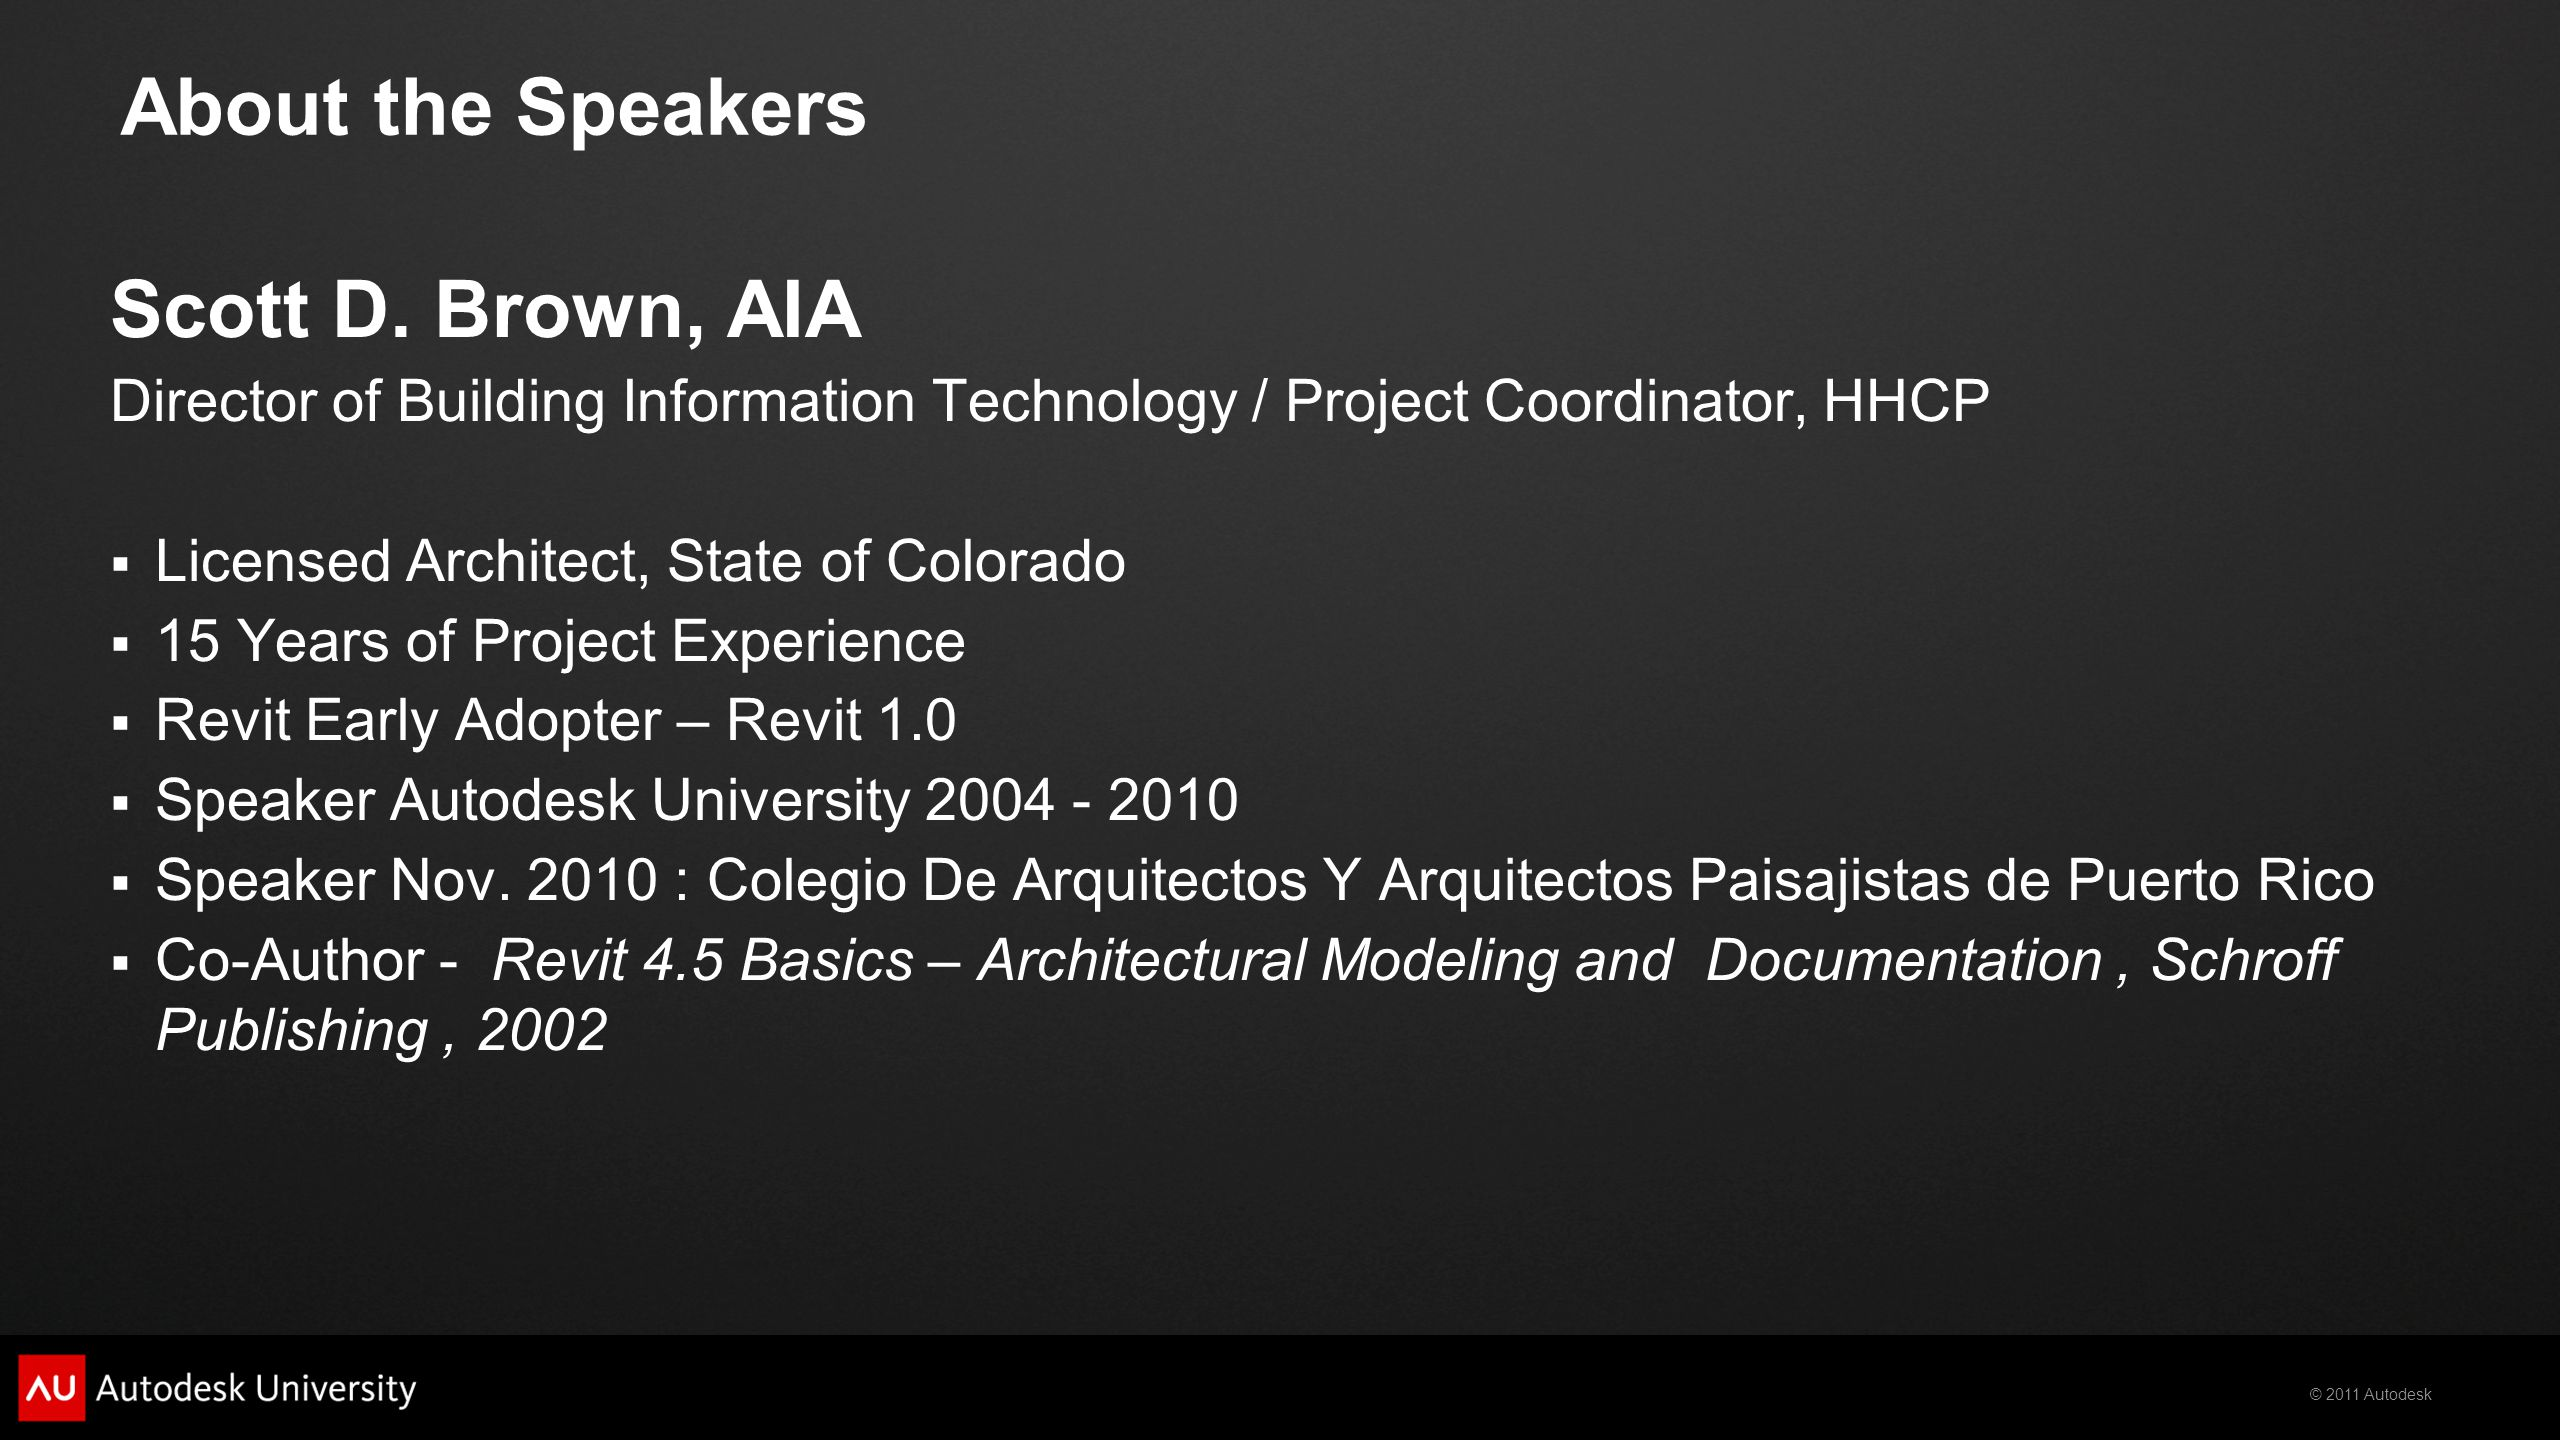 About the Speakers Scott D. Brown, AIA